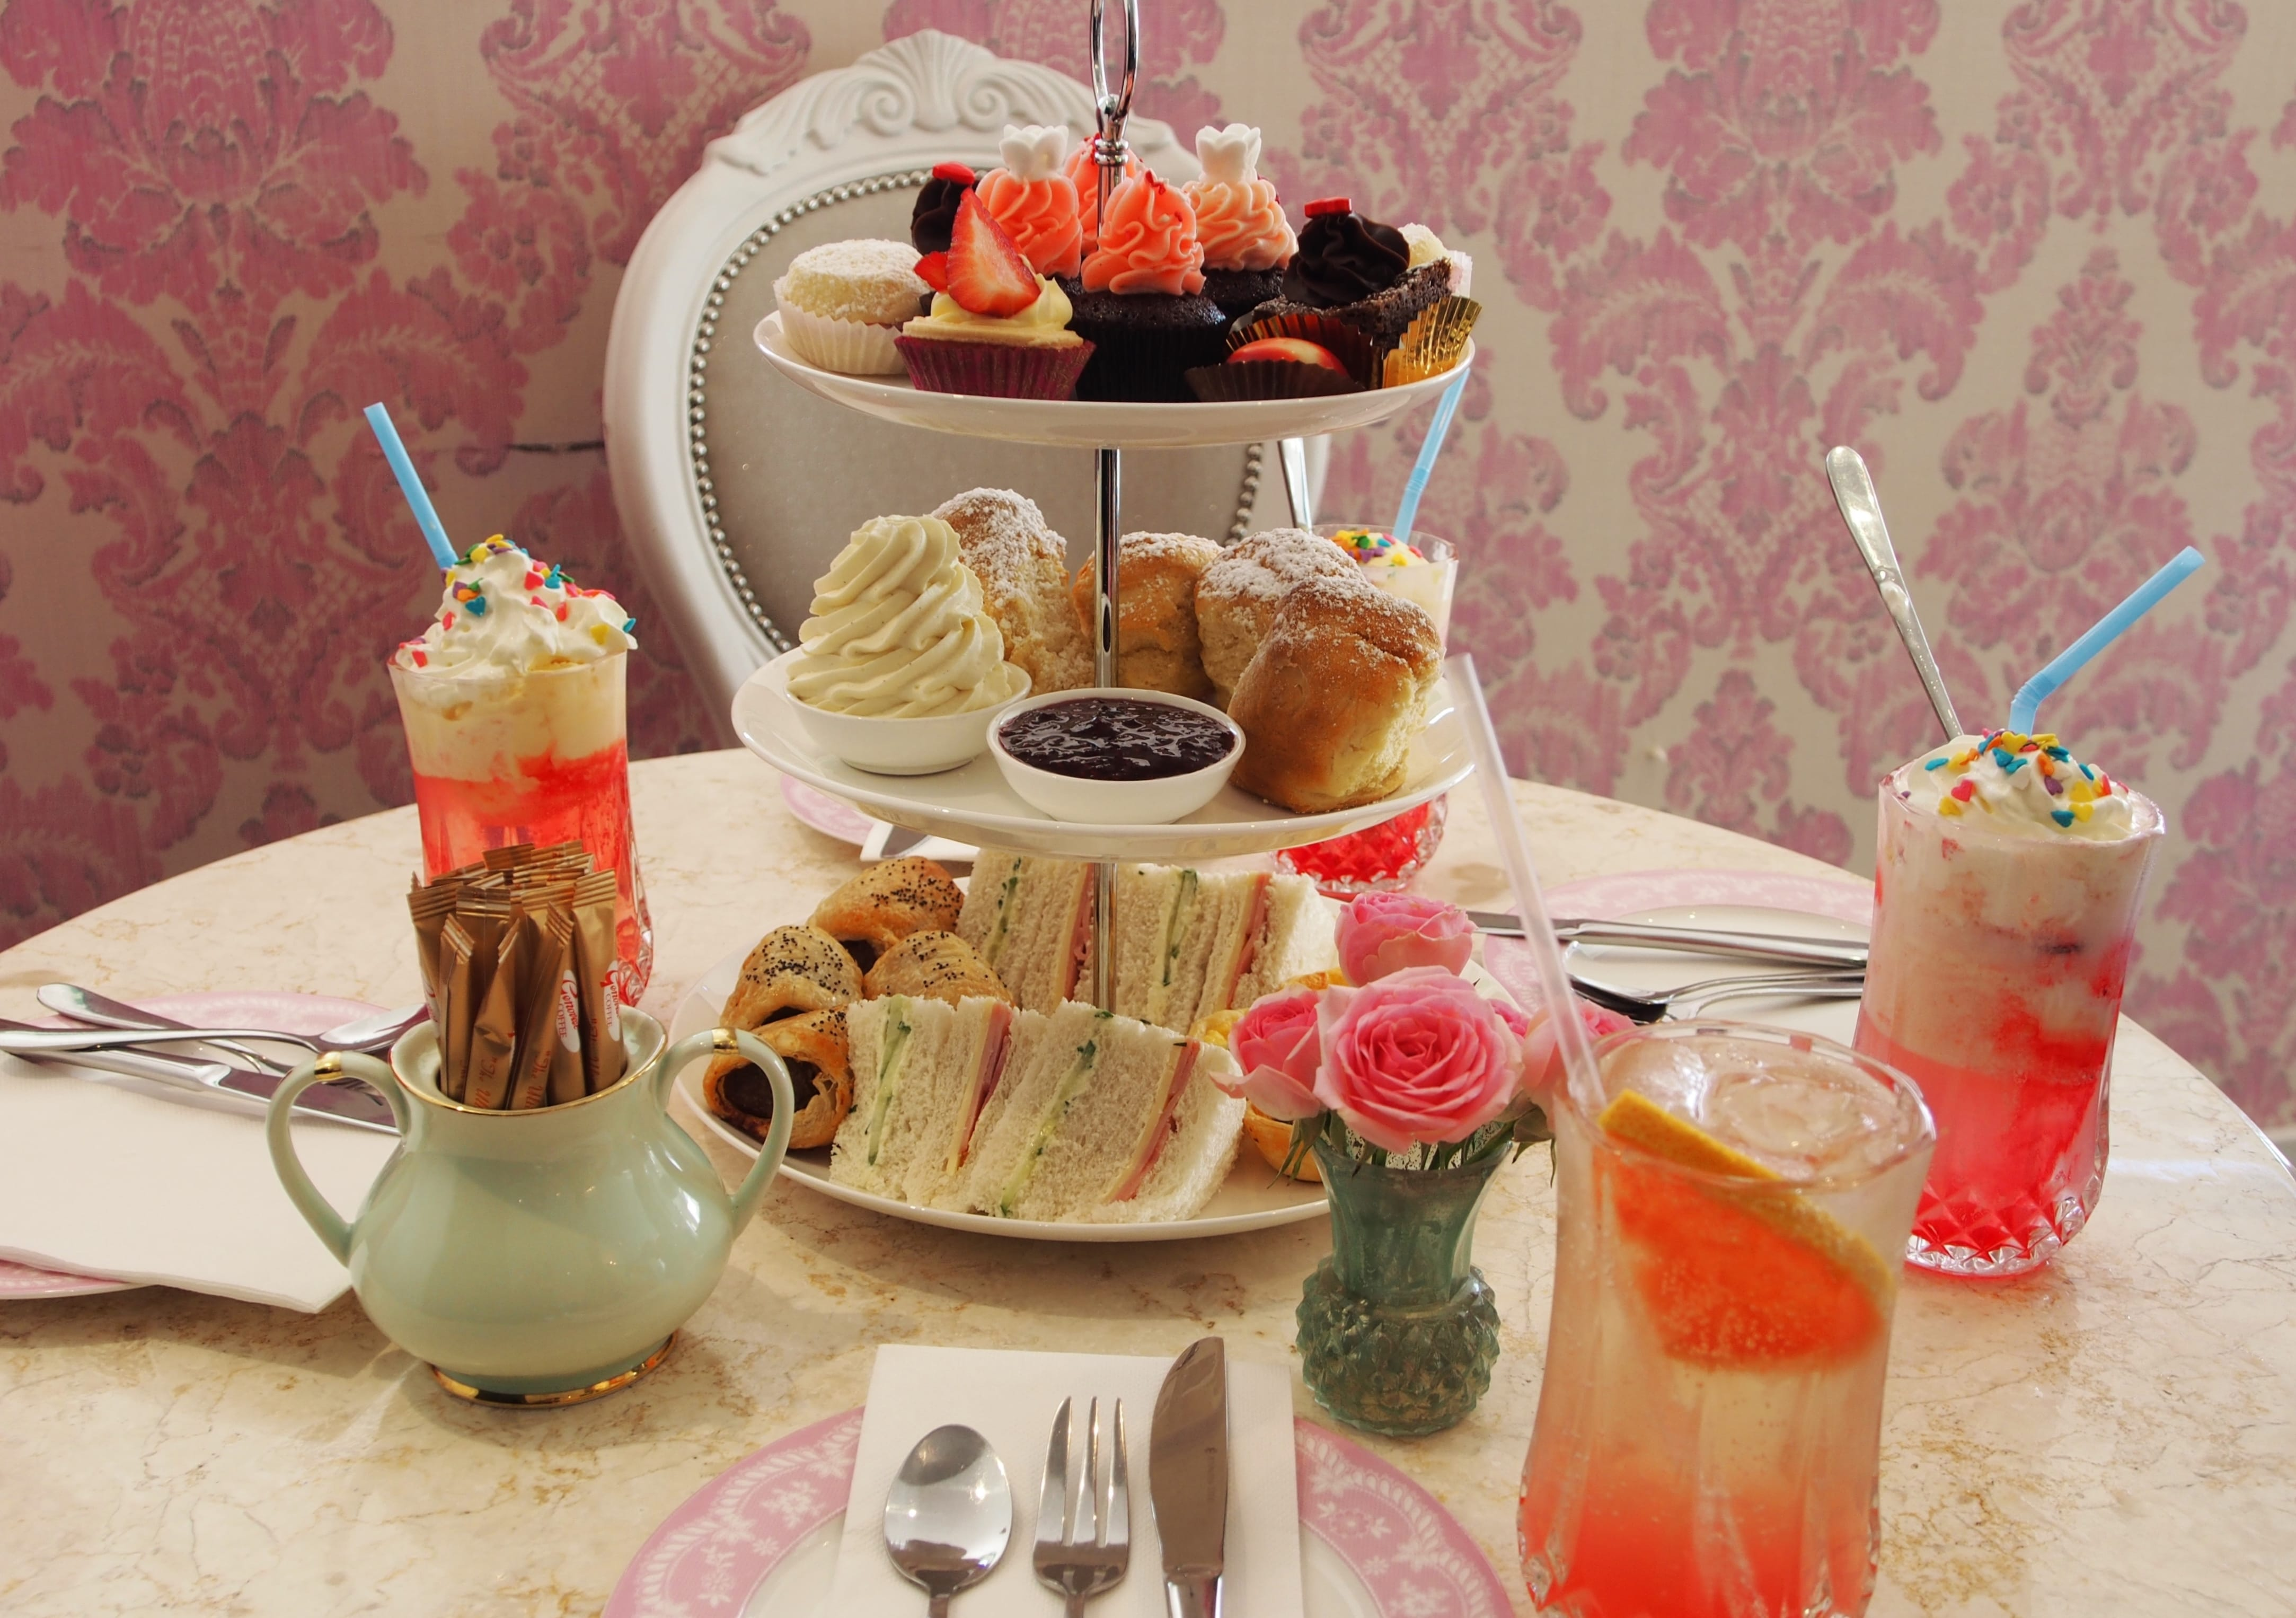 mother's day gift - high tea